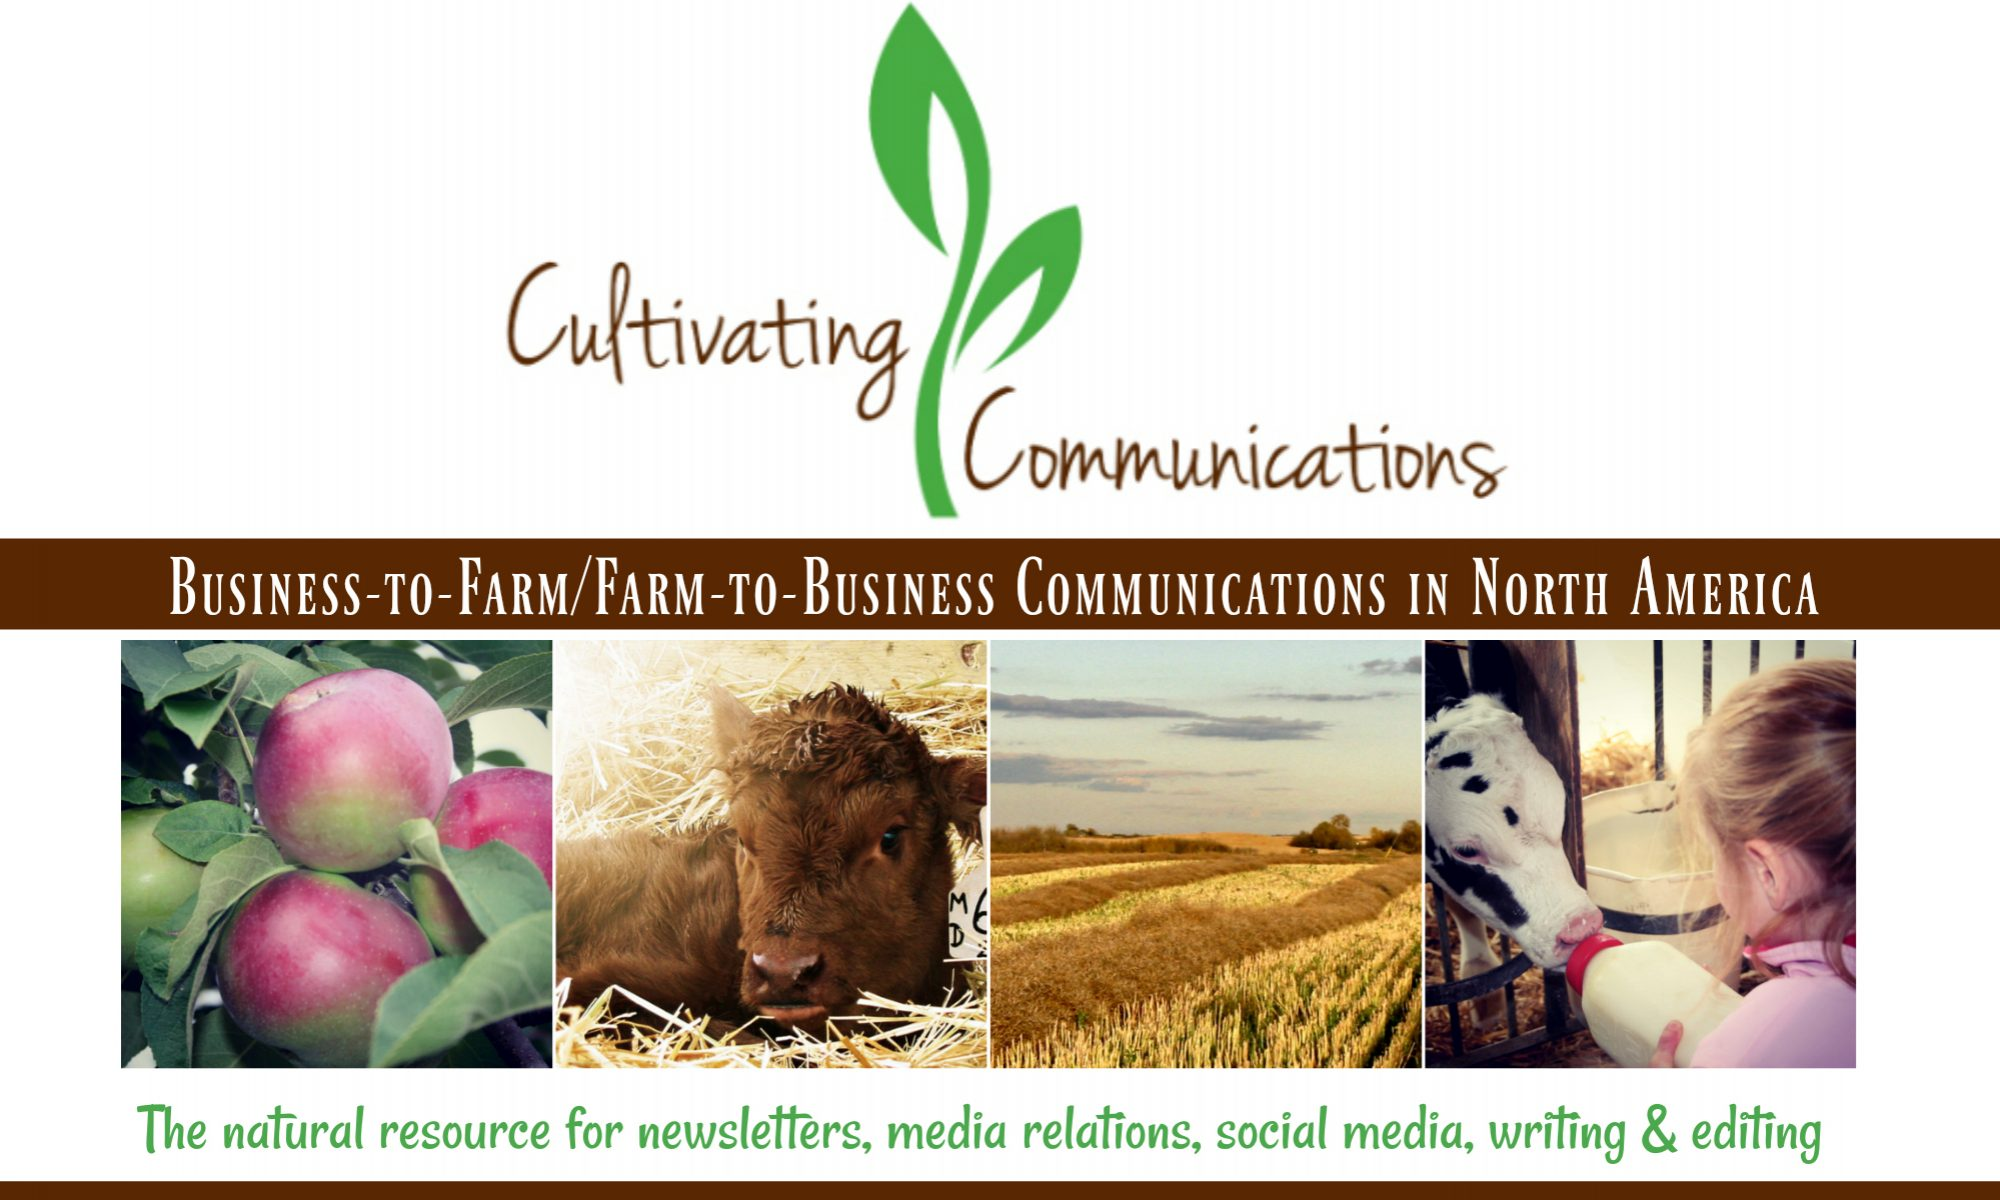 Cultivating Communications